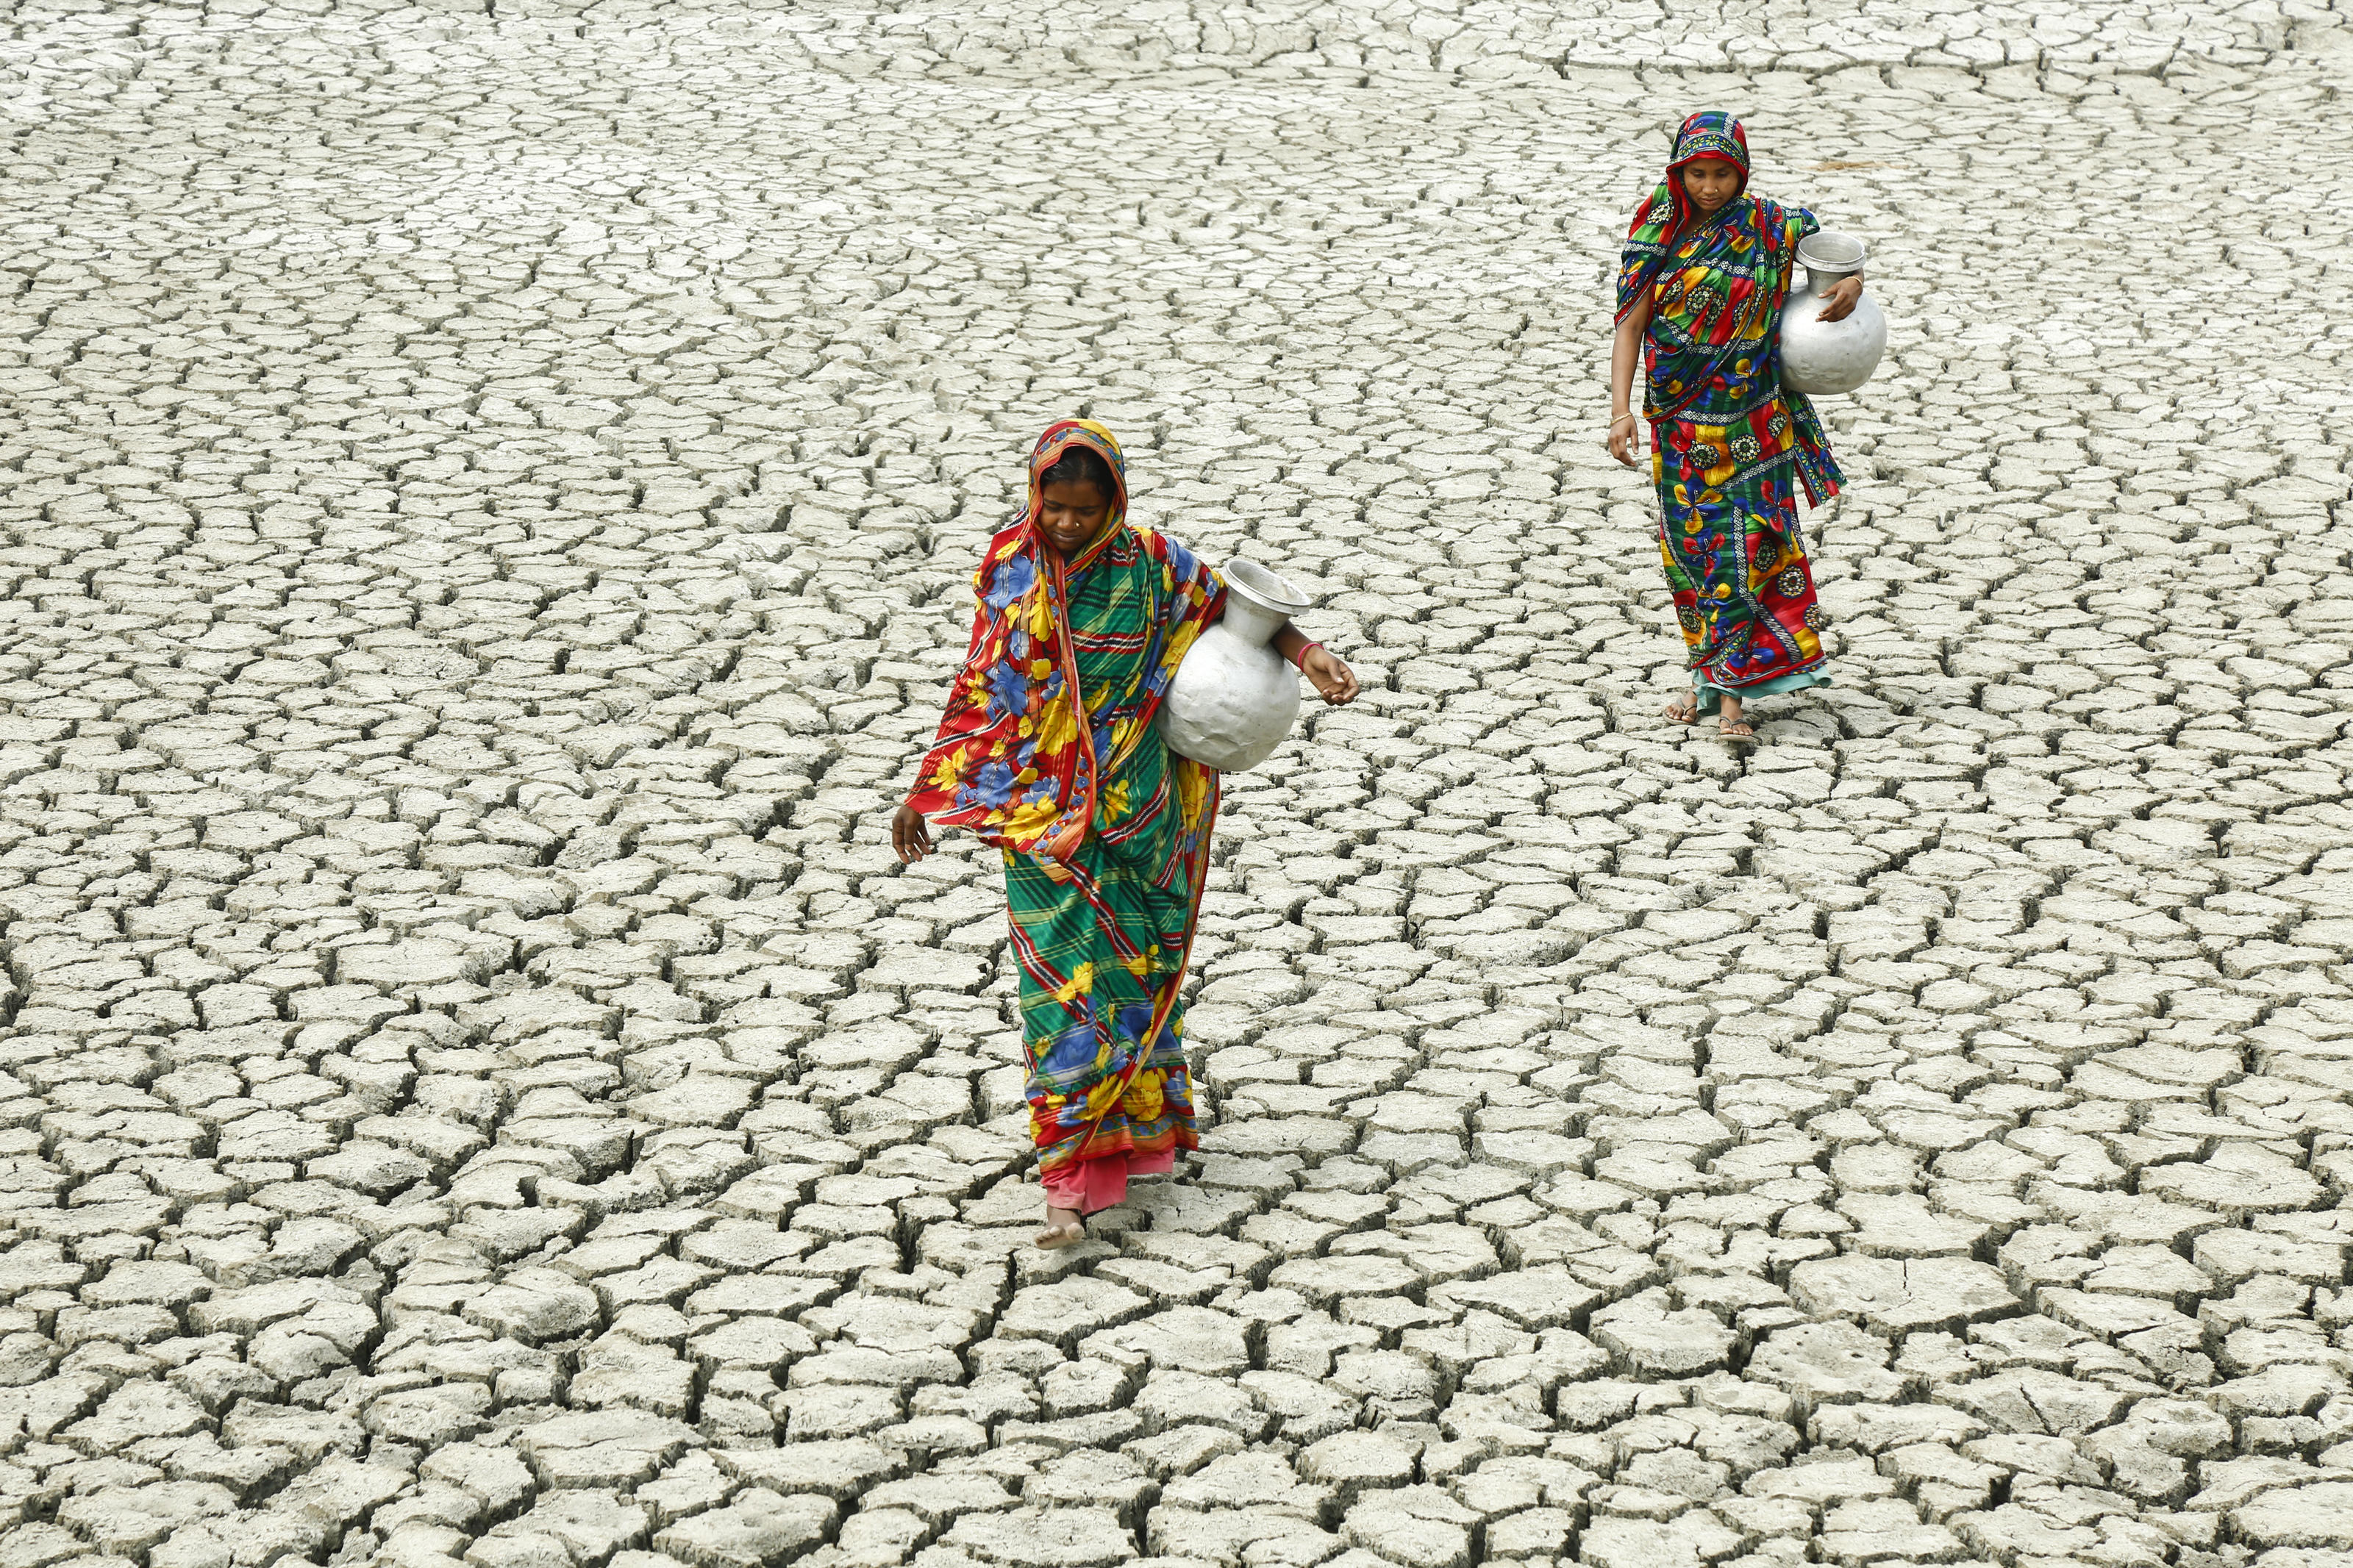 Village women walk on cracked ground, towards a pond to collect water. Floods, cyclones and droughts exacerbated by climate change make it extremely difficult to reach everyone with clean water, toilet and hygiene services. In the south of Bangladesh, ...